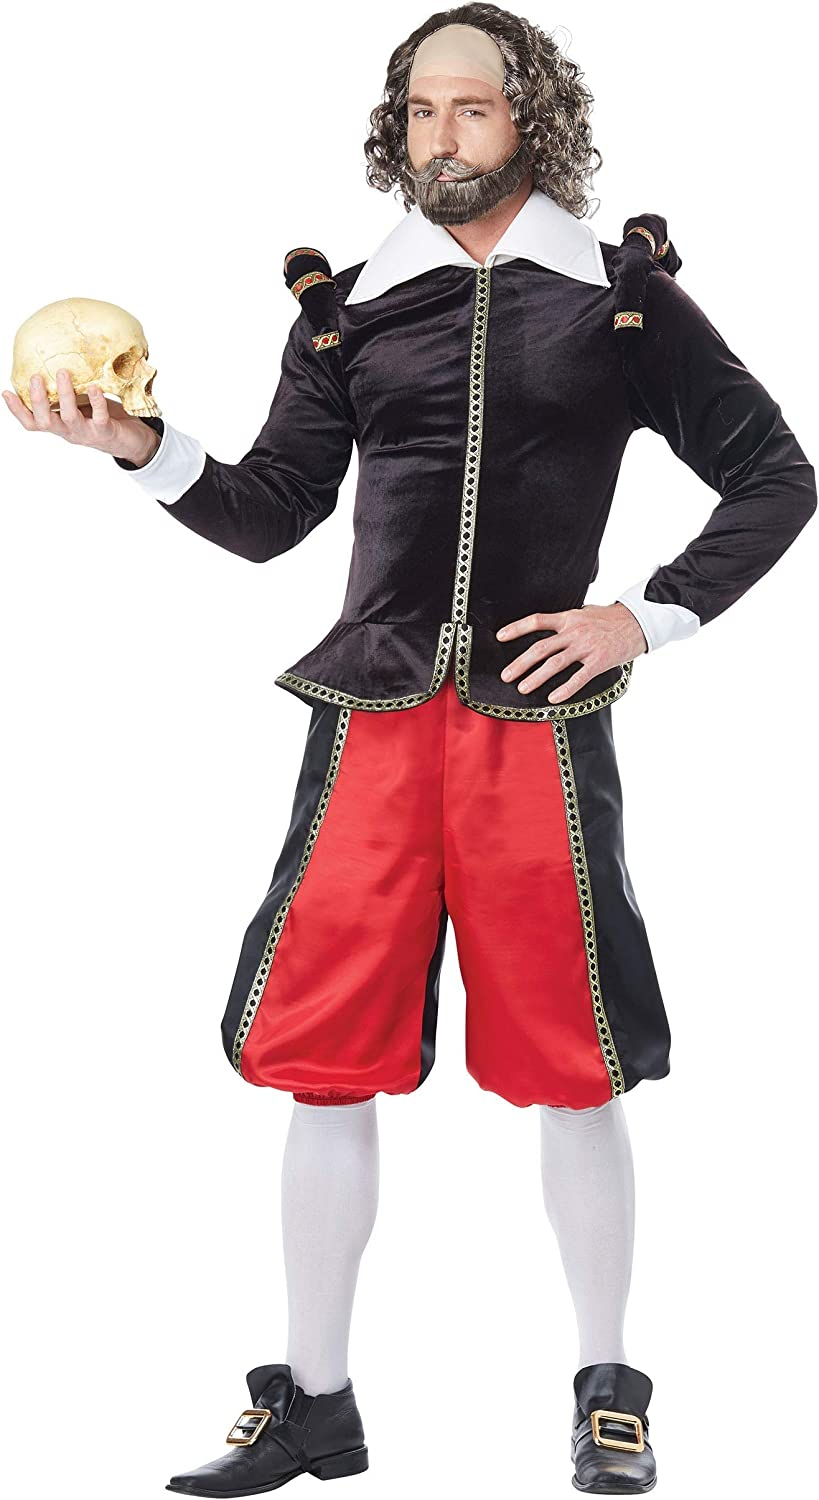 Sales of SALE items from new works Adult William Limited Special Price Shakespeare Costume